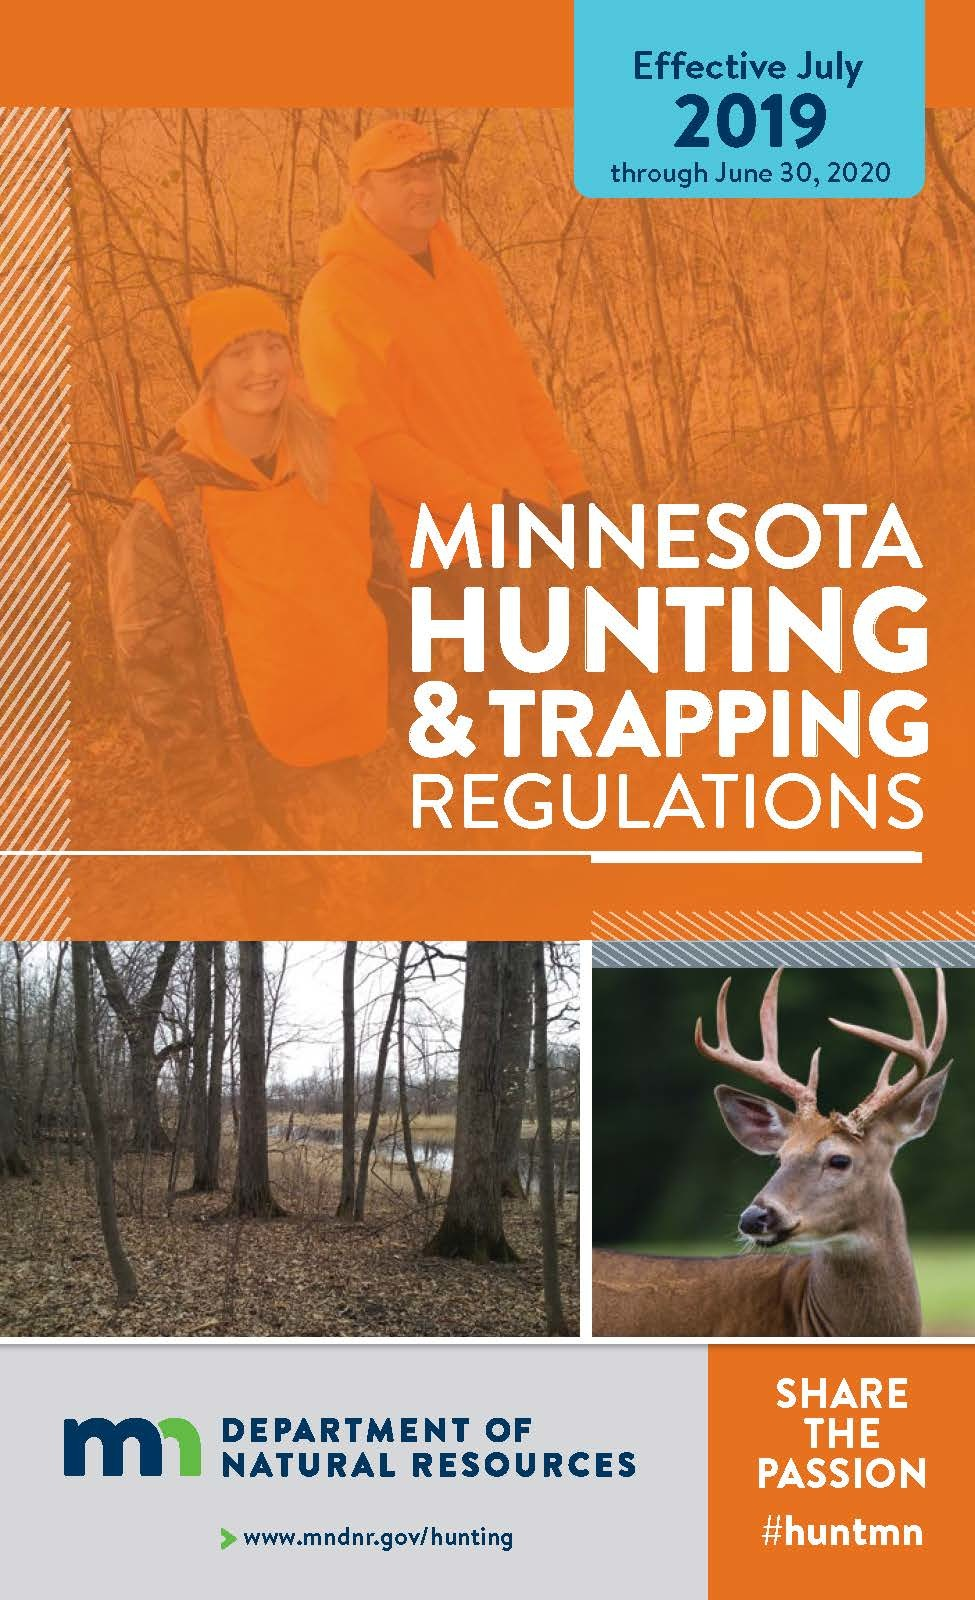 image of 2019 hunting regulations book cover